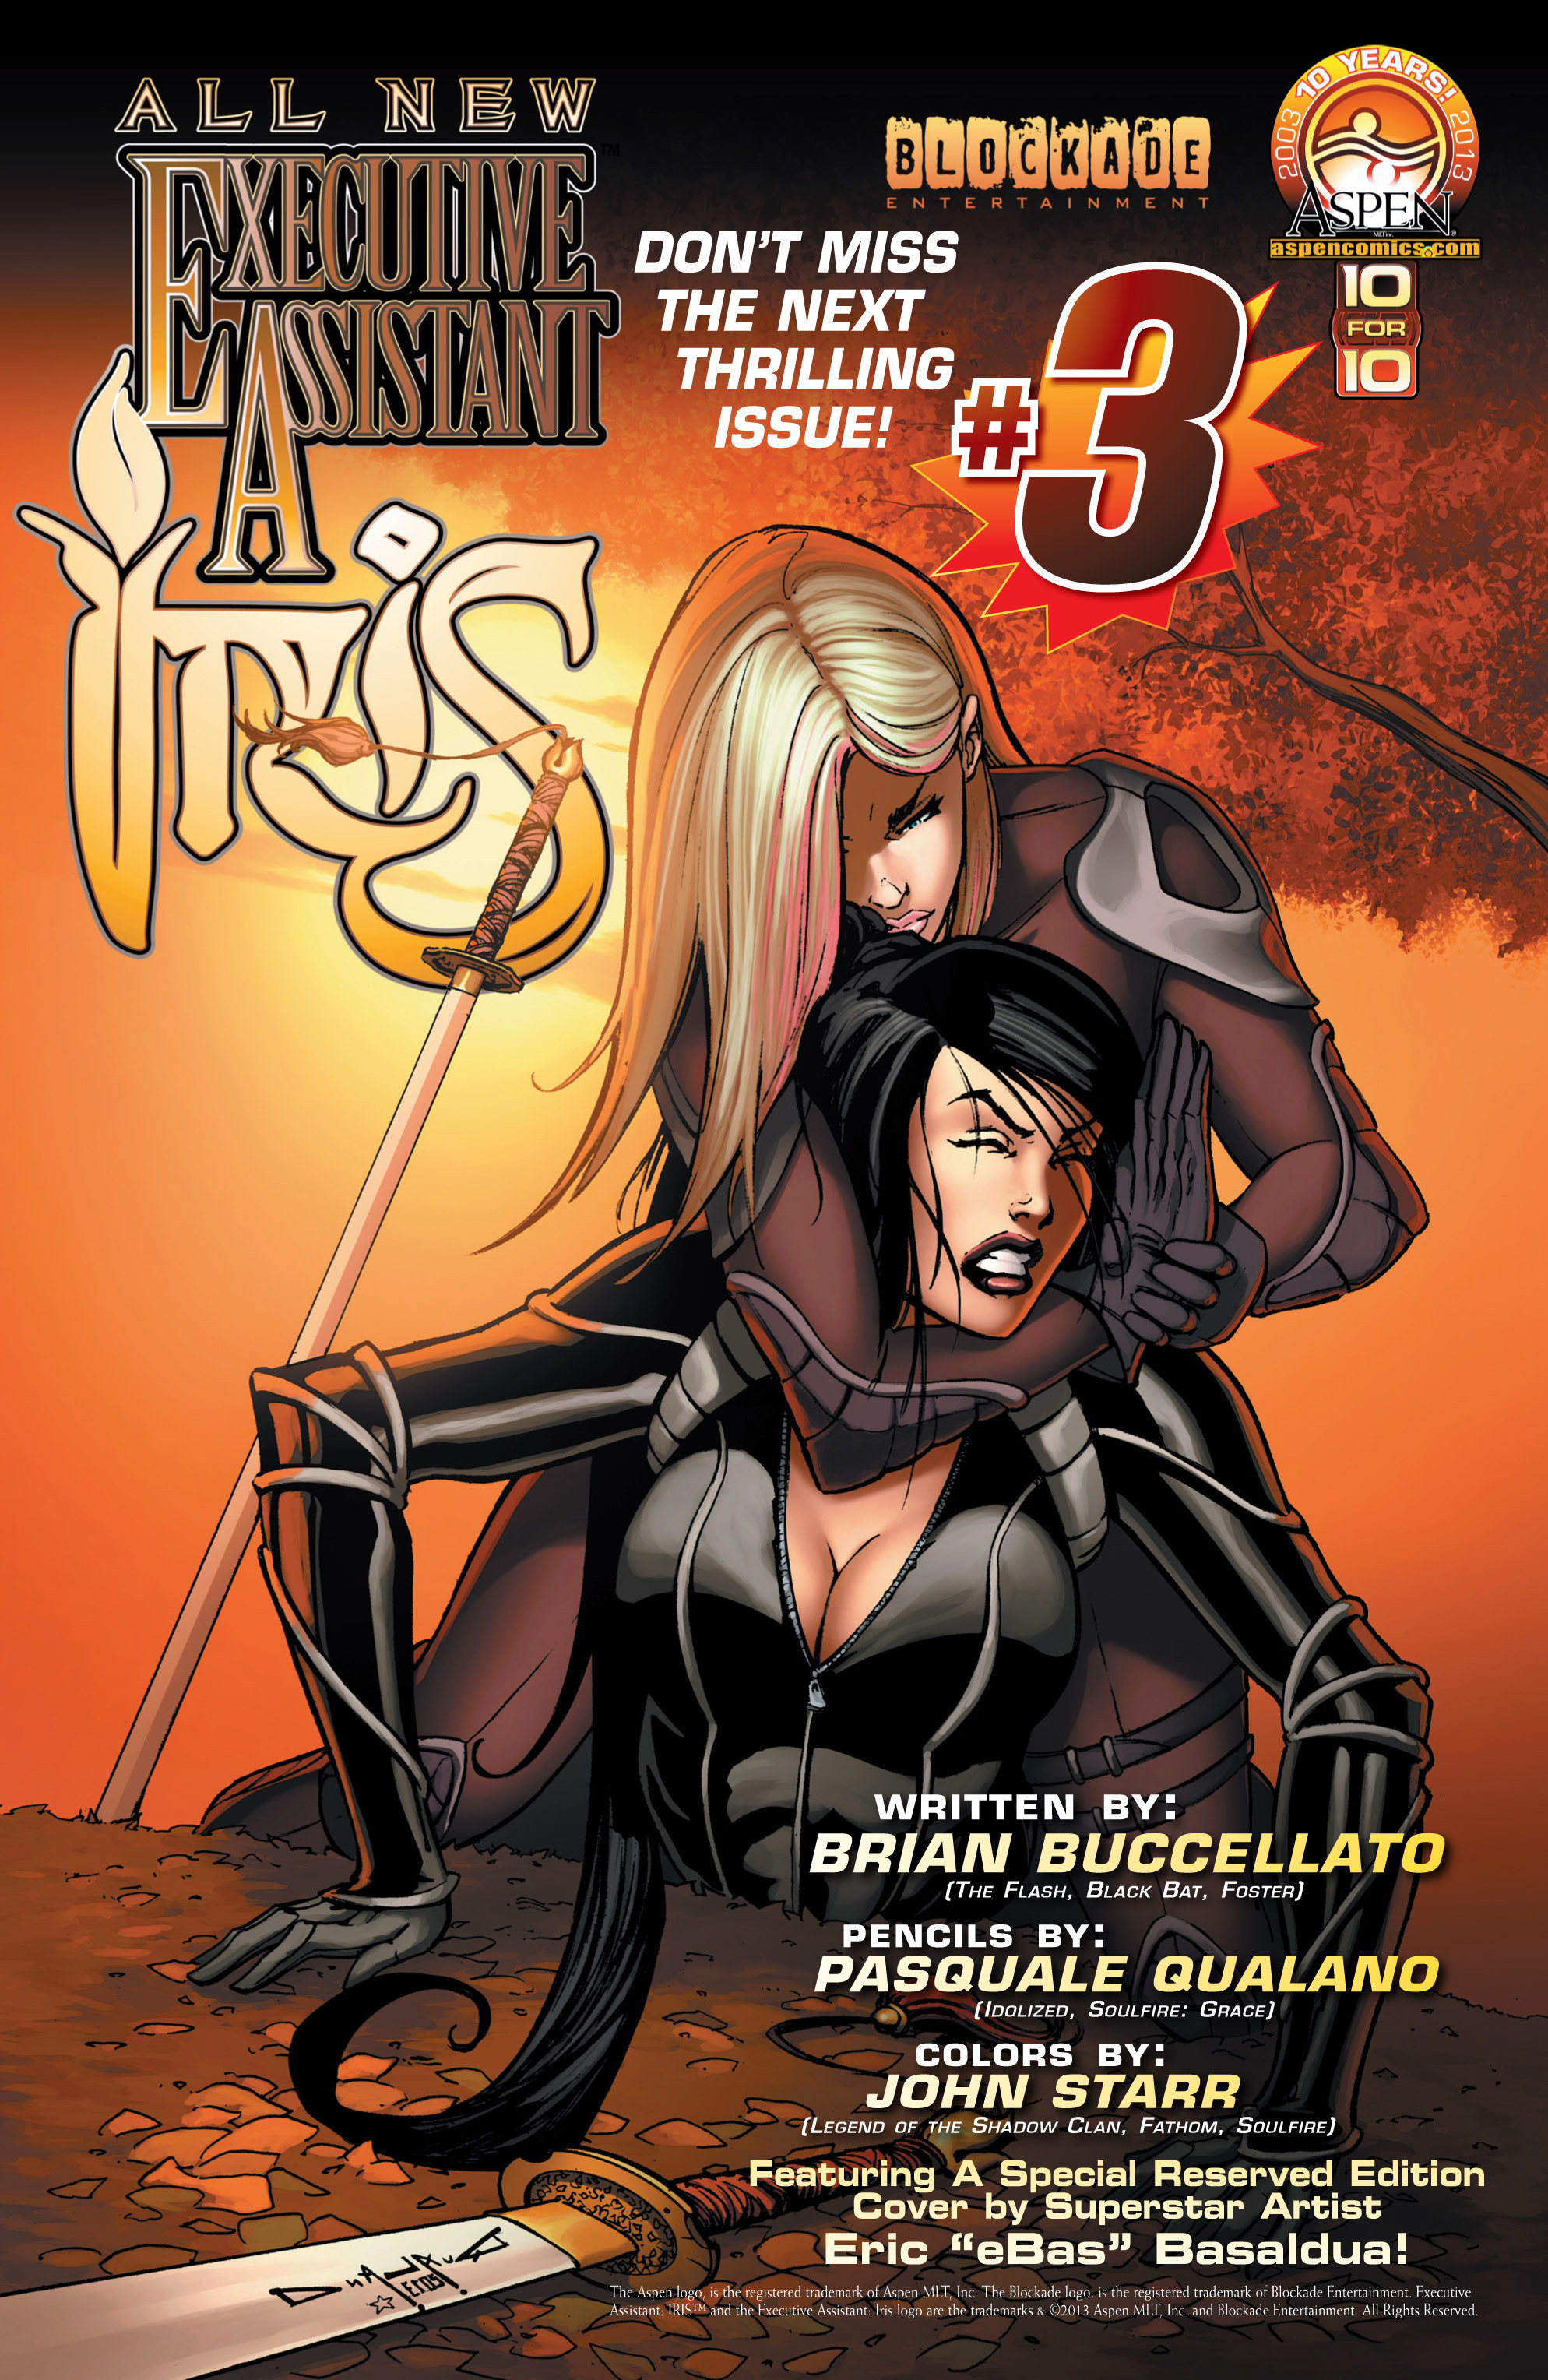 Read online All New Executive Assistant: Iris comic -  Issue # TPB - 48